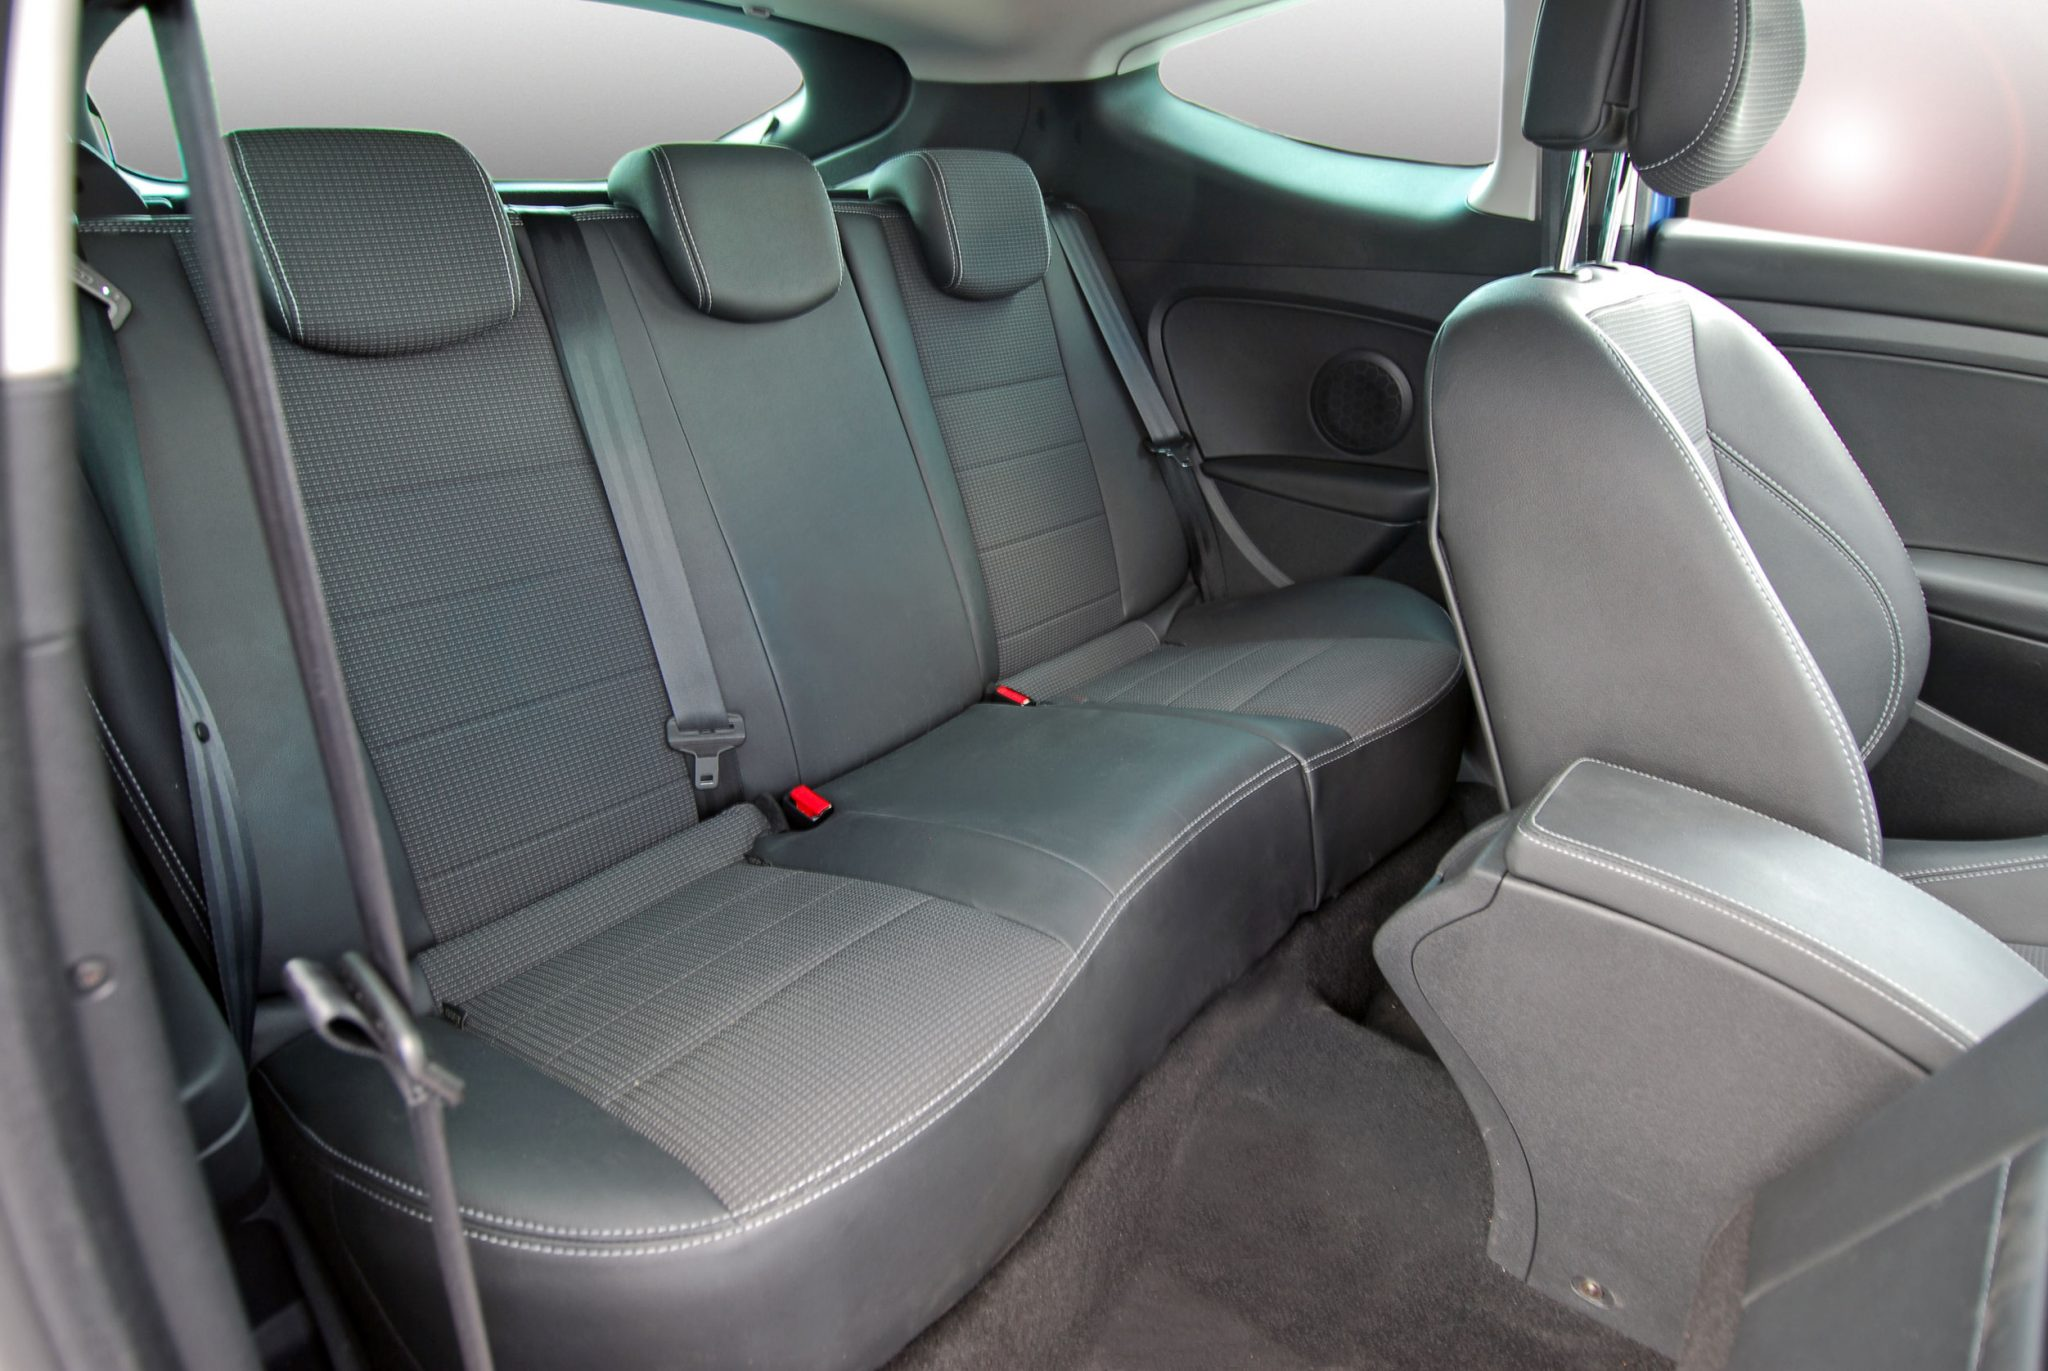 Premier Auto Detailing shows customers like you how to clean your car's carpets.